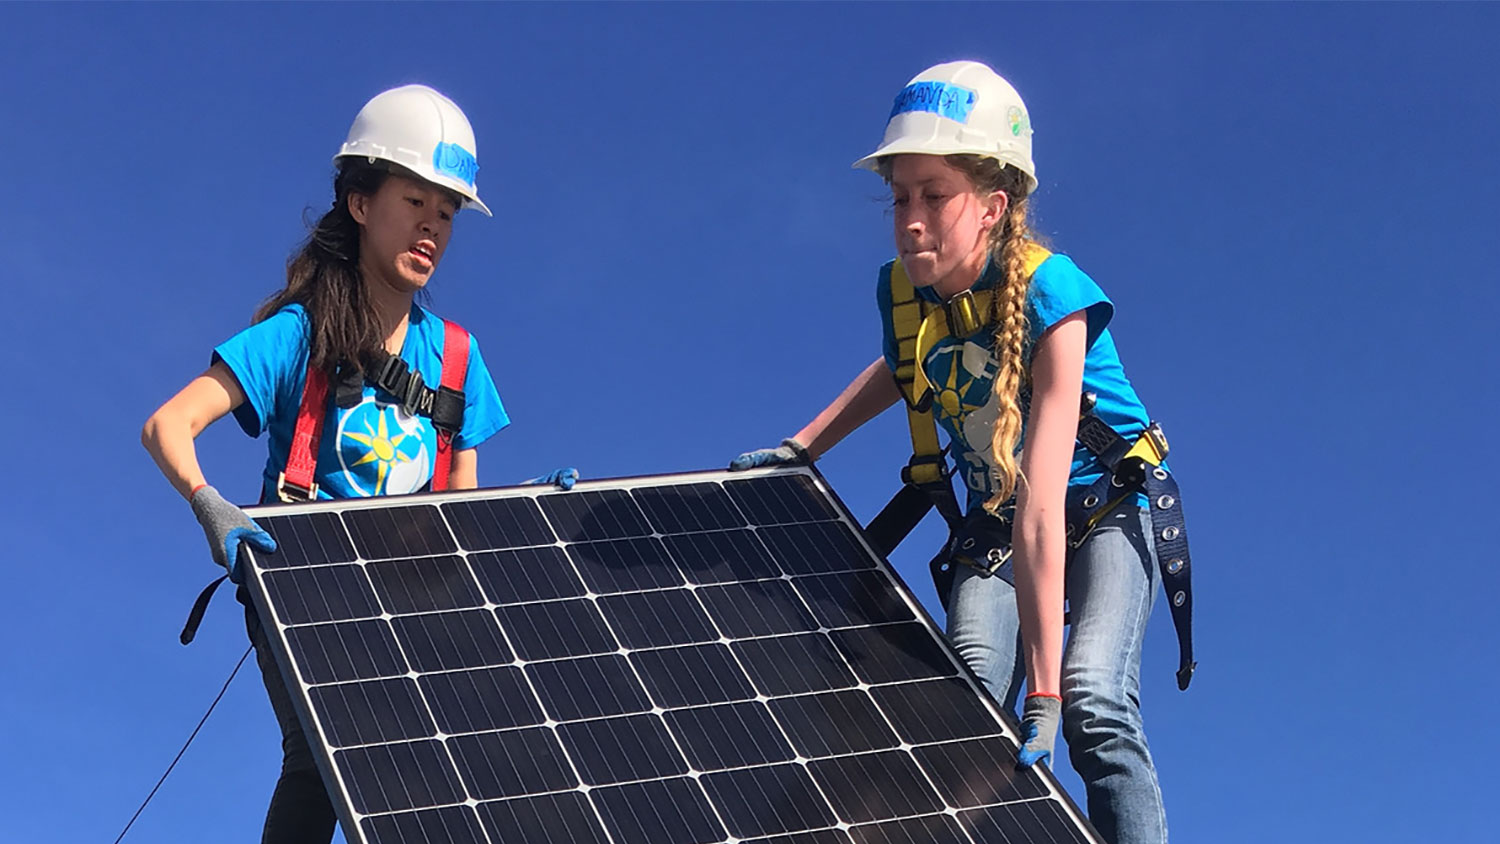 Students Install Solar To Help Others